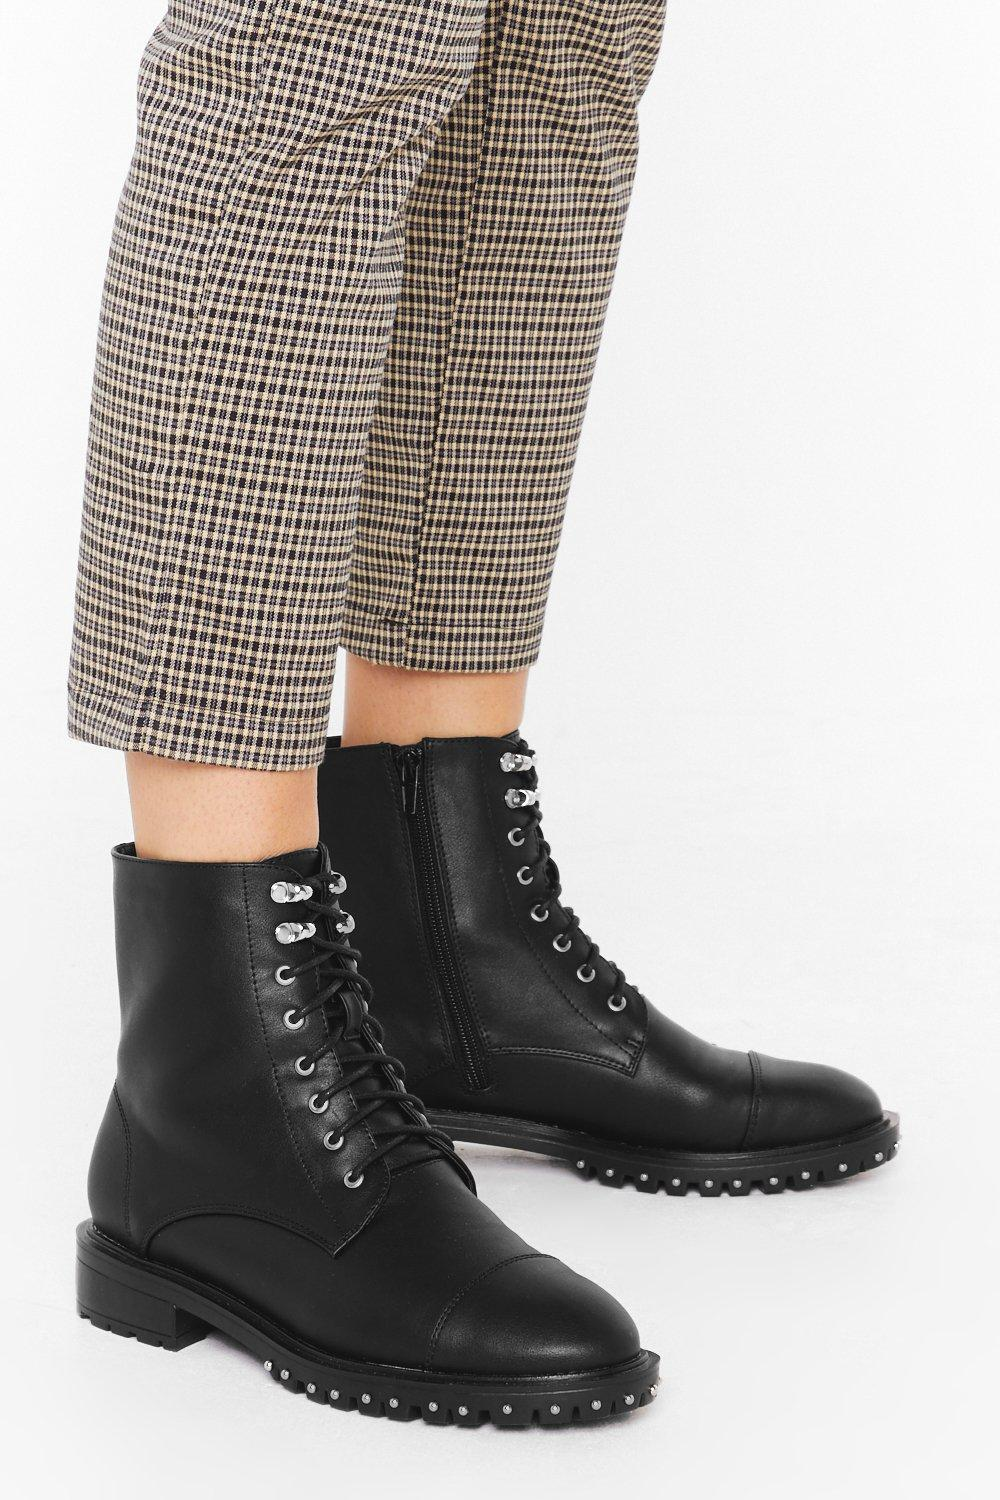 Image of You Spike Me Too Much Faux Leather Biker Boots